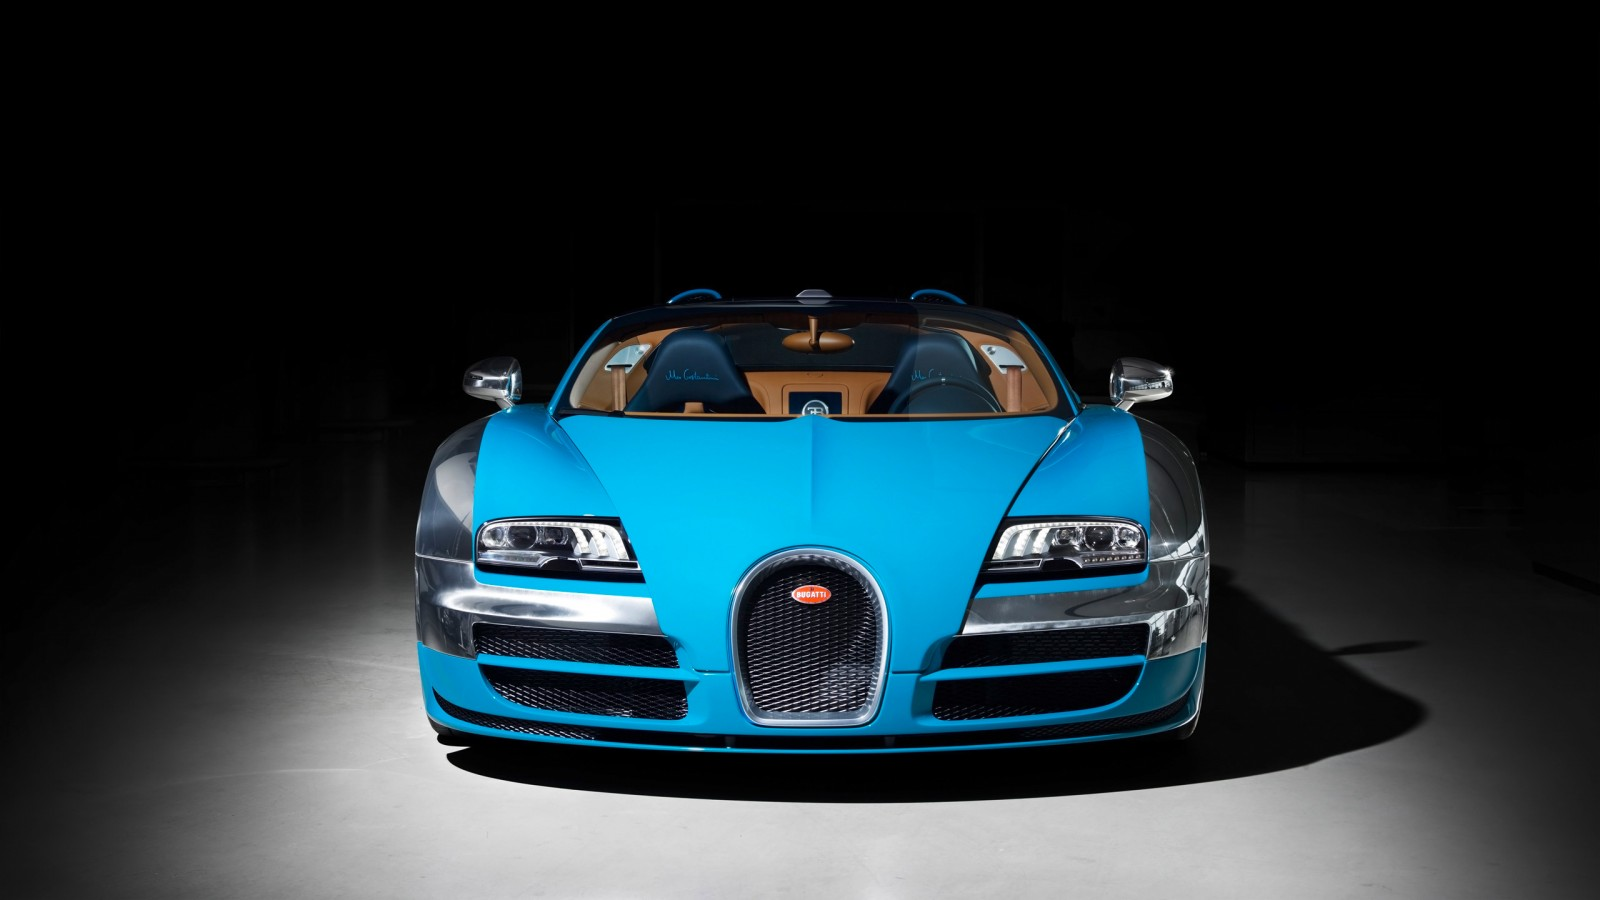 2013 bugatti veyron grand sport vitesse legend meo costantini 4 wallpaper hd car wallpapers. Black Bedroom Furniture Sets. Home Design Ideas